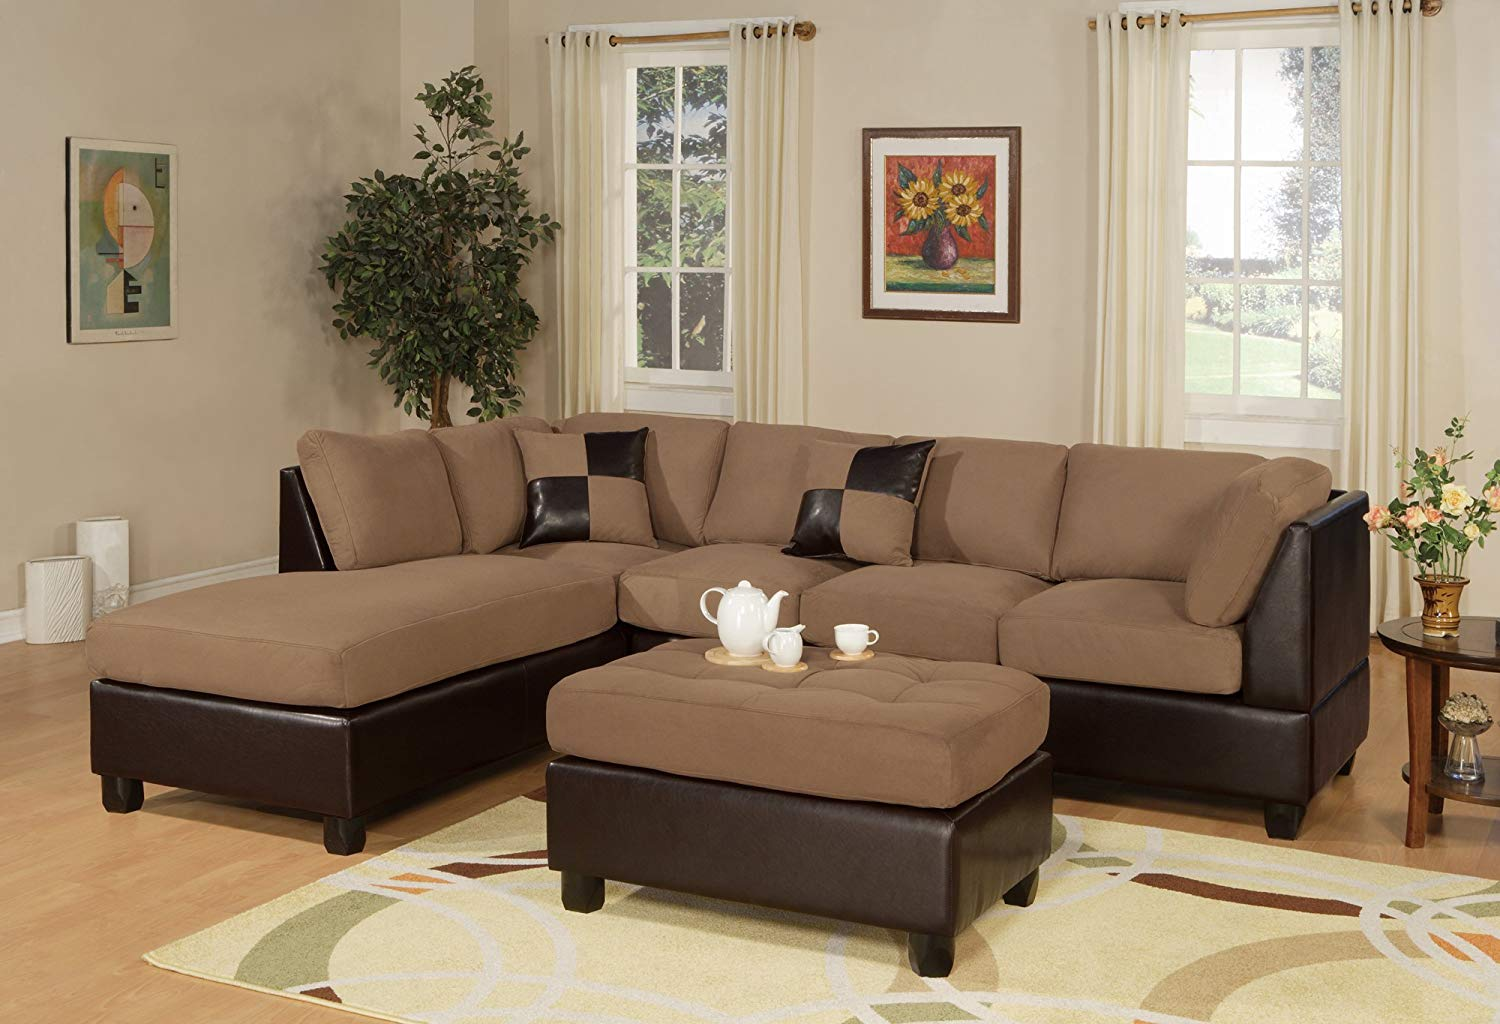 Traveller Location: BOBKONA Hungtinton Microfiber/Faux Leather 3-Piece Sectional  Sofa Set, Saddle: Kitchen & Dining